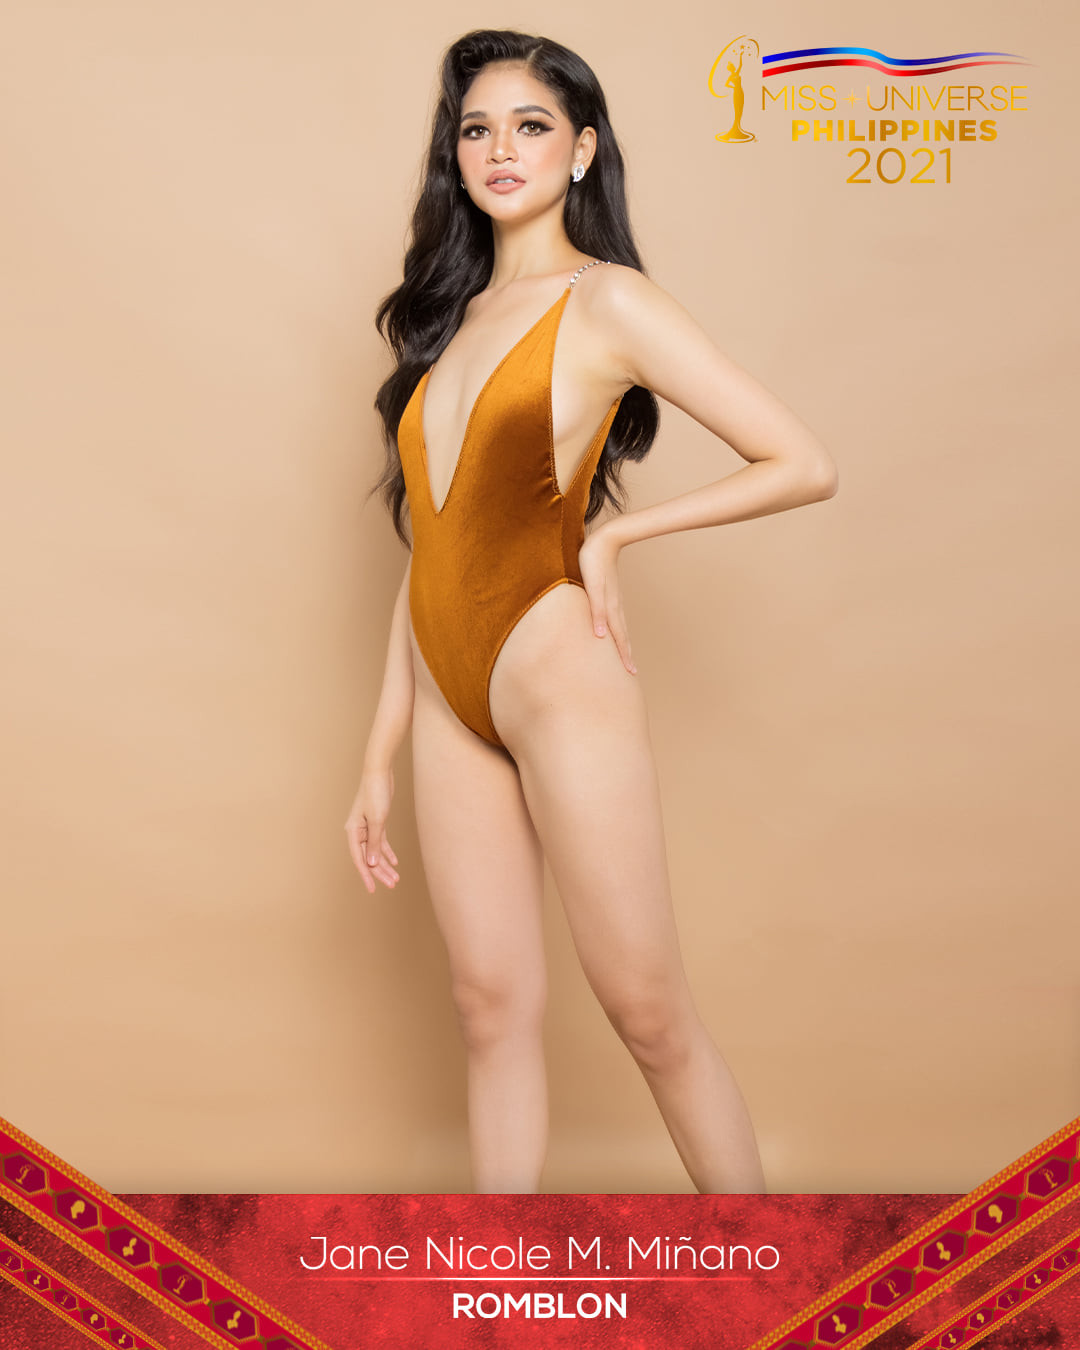 75 pre-candidatas a miss universe philippines 2021. - Página 5 RT3HJe